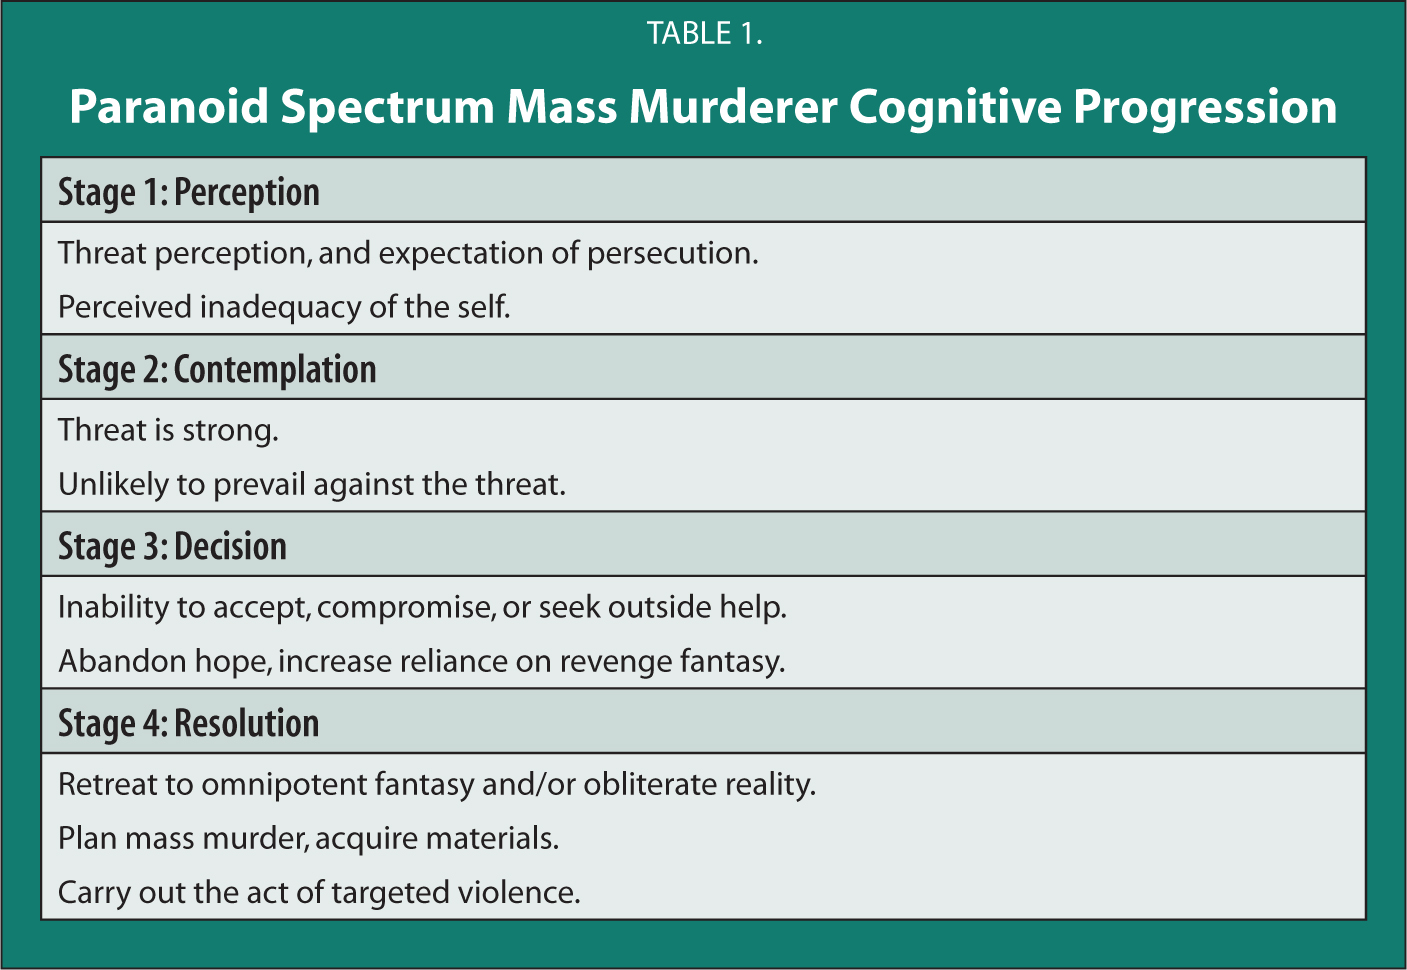 Paranoid Spectrum Mass Murderer Cognitive Progression